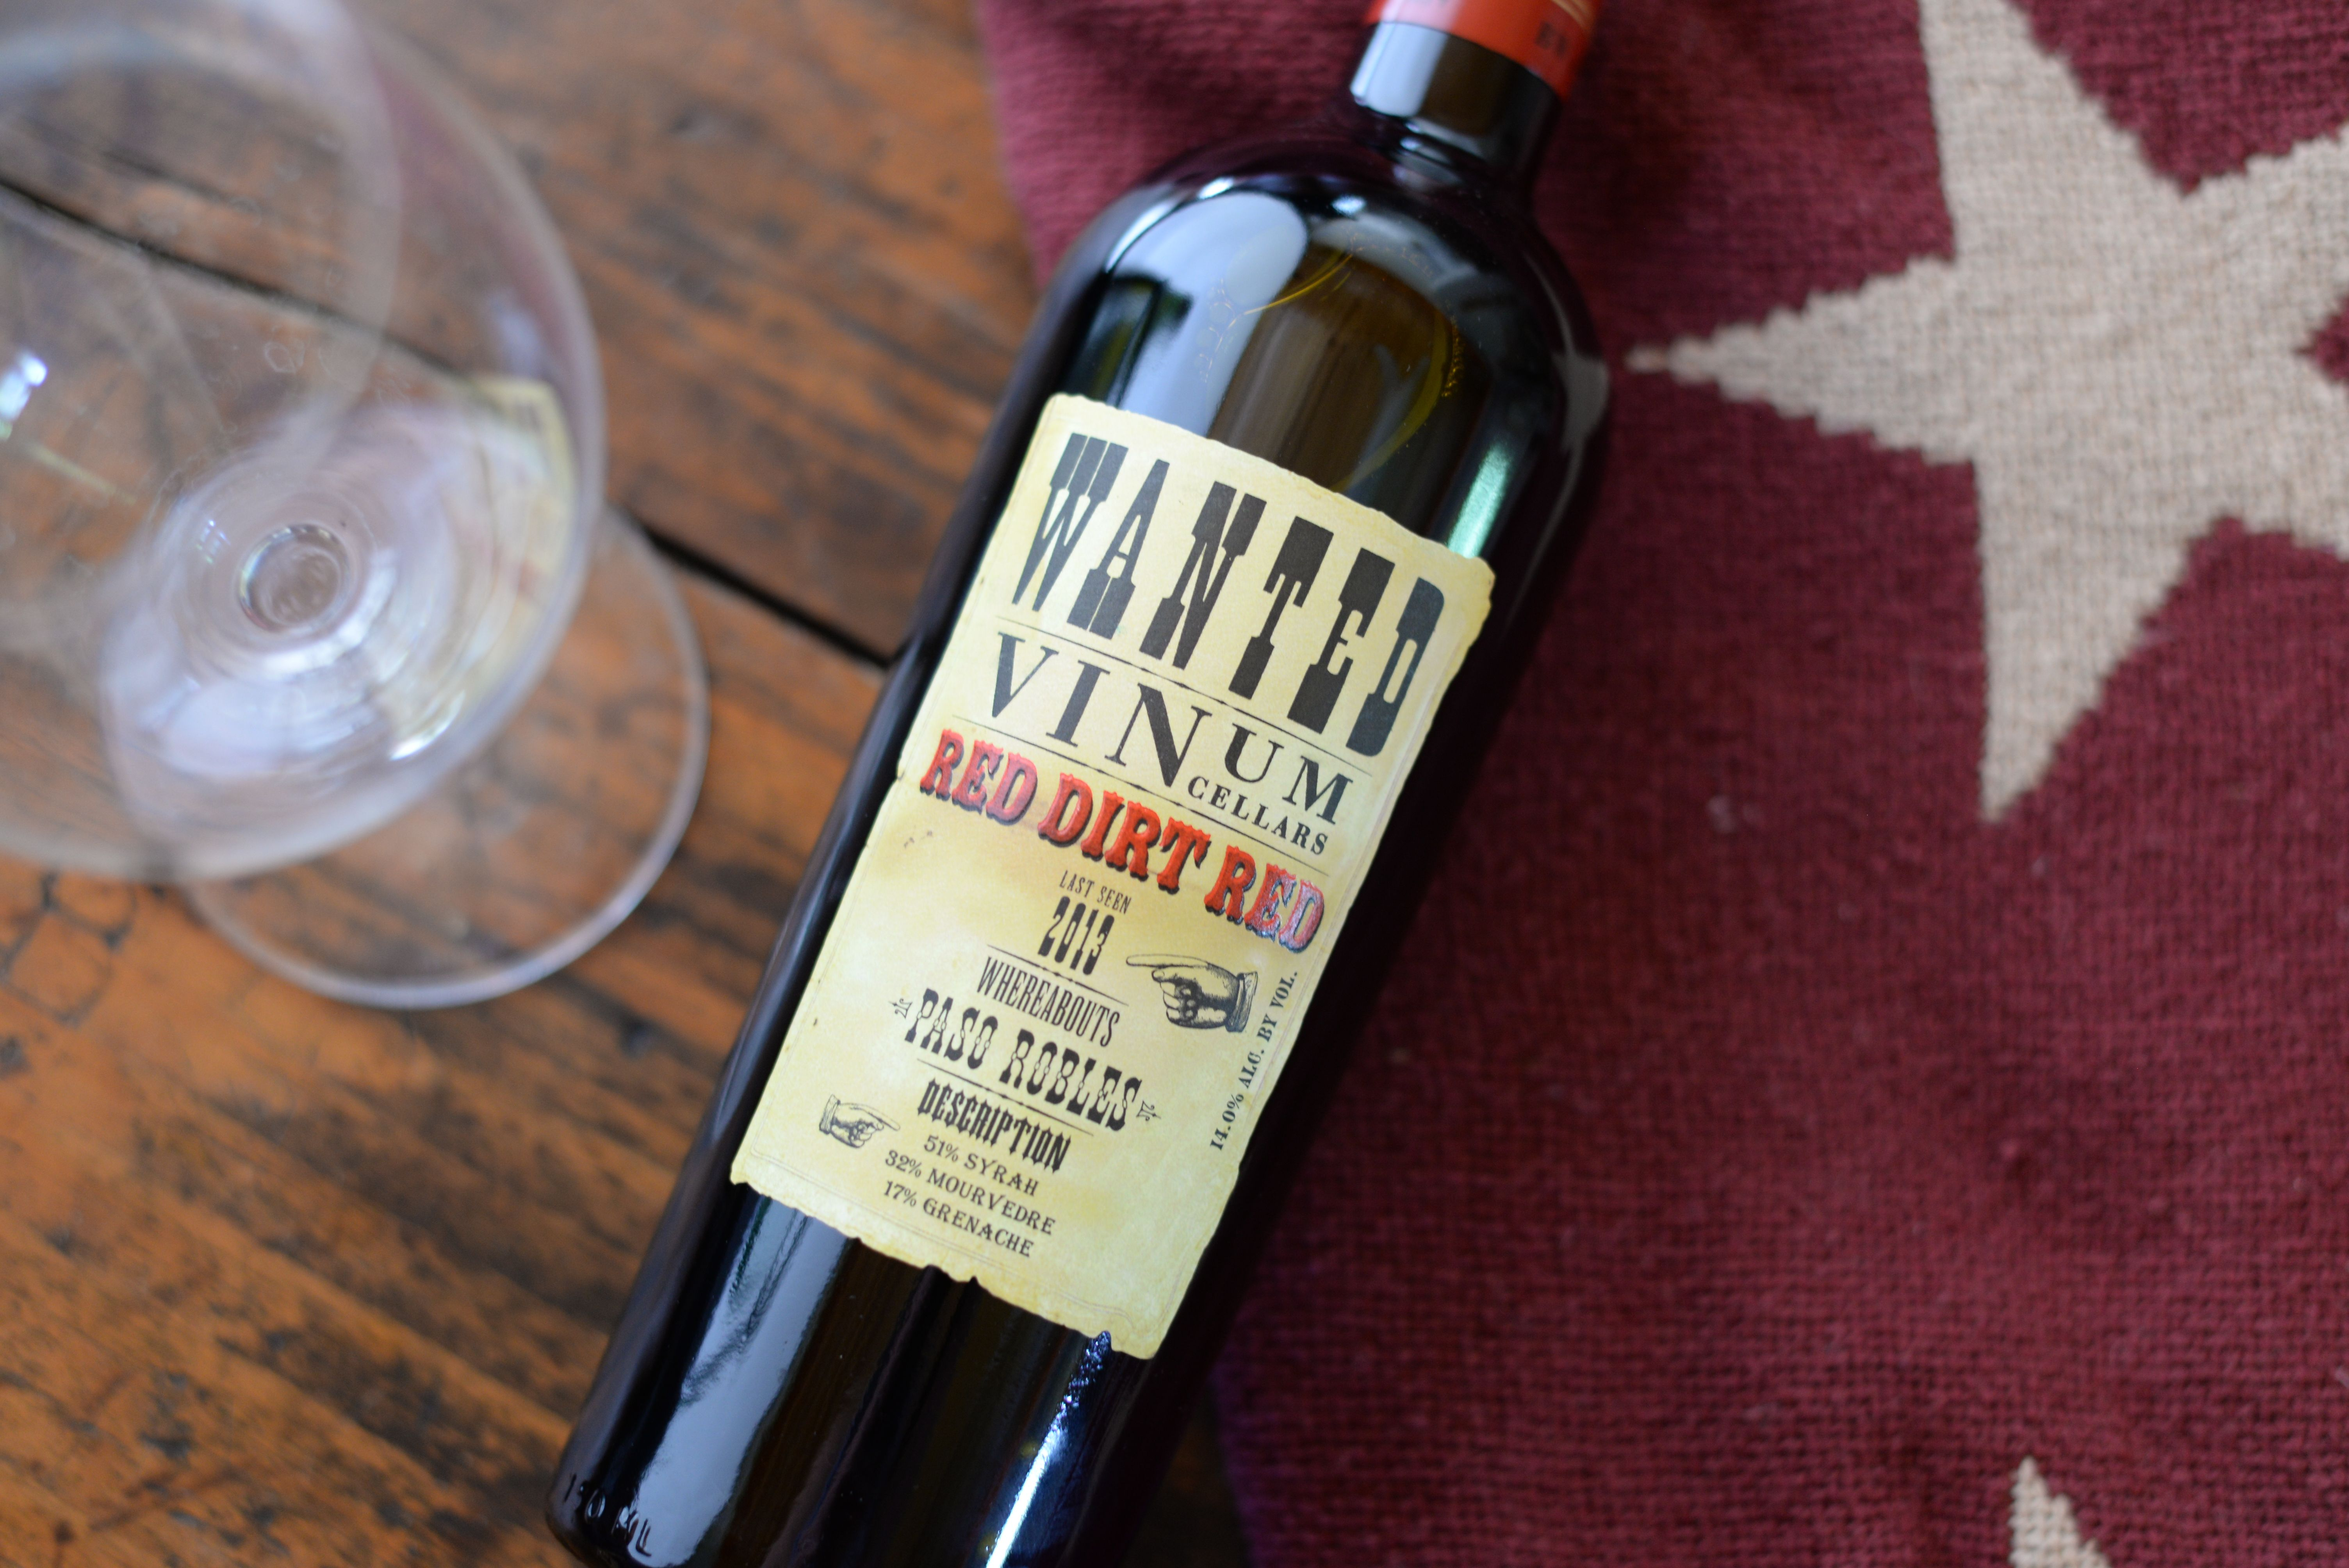 Vinum Cellars Red Dirt Red The Red Rhone Blend From Paso Robles Is Aromatic With White Pepper Spice And Ripe With Sweet Cherry Wines Vinum California Wine